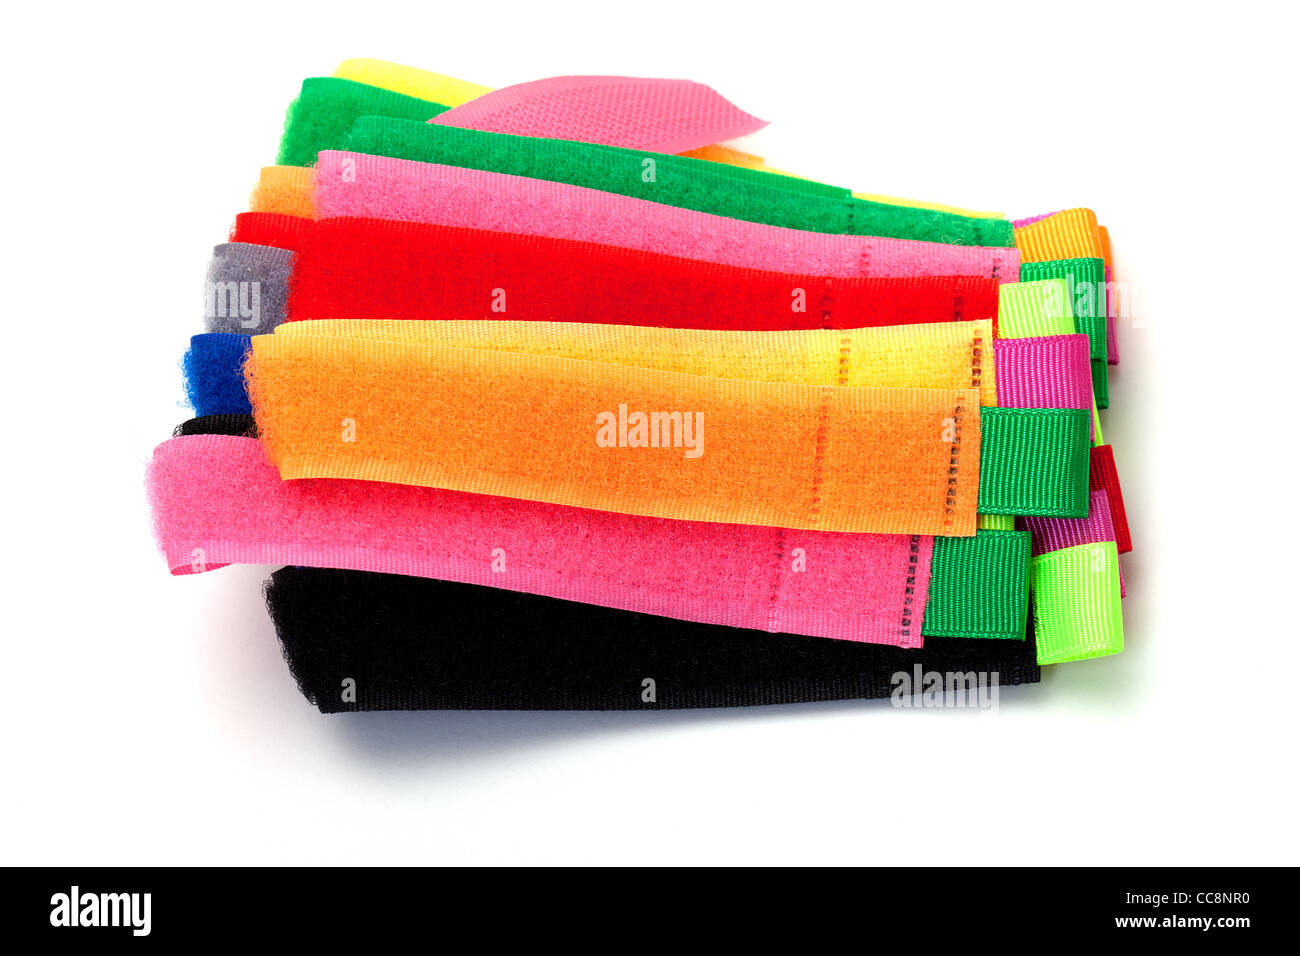 photo of multicolor velcro straps - Stock Image